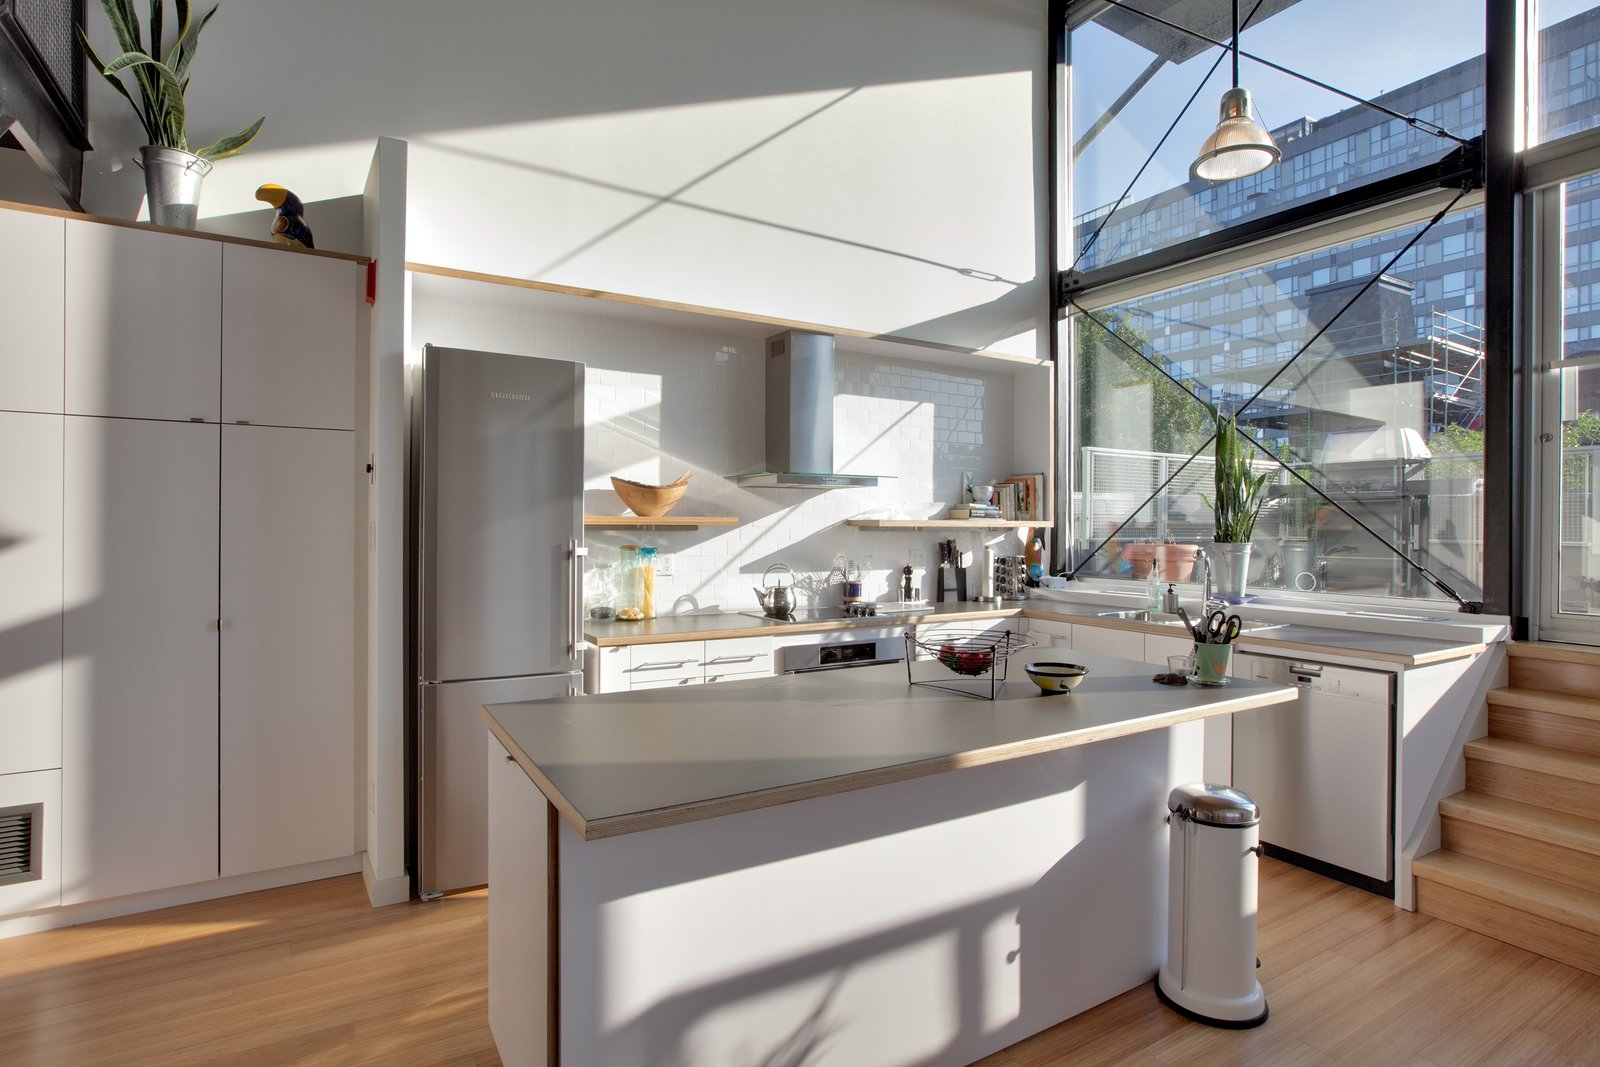 Berkely Live/Work Residence kitchen